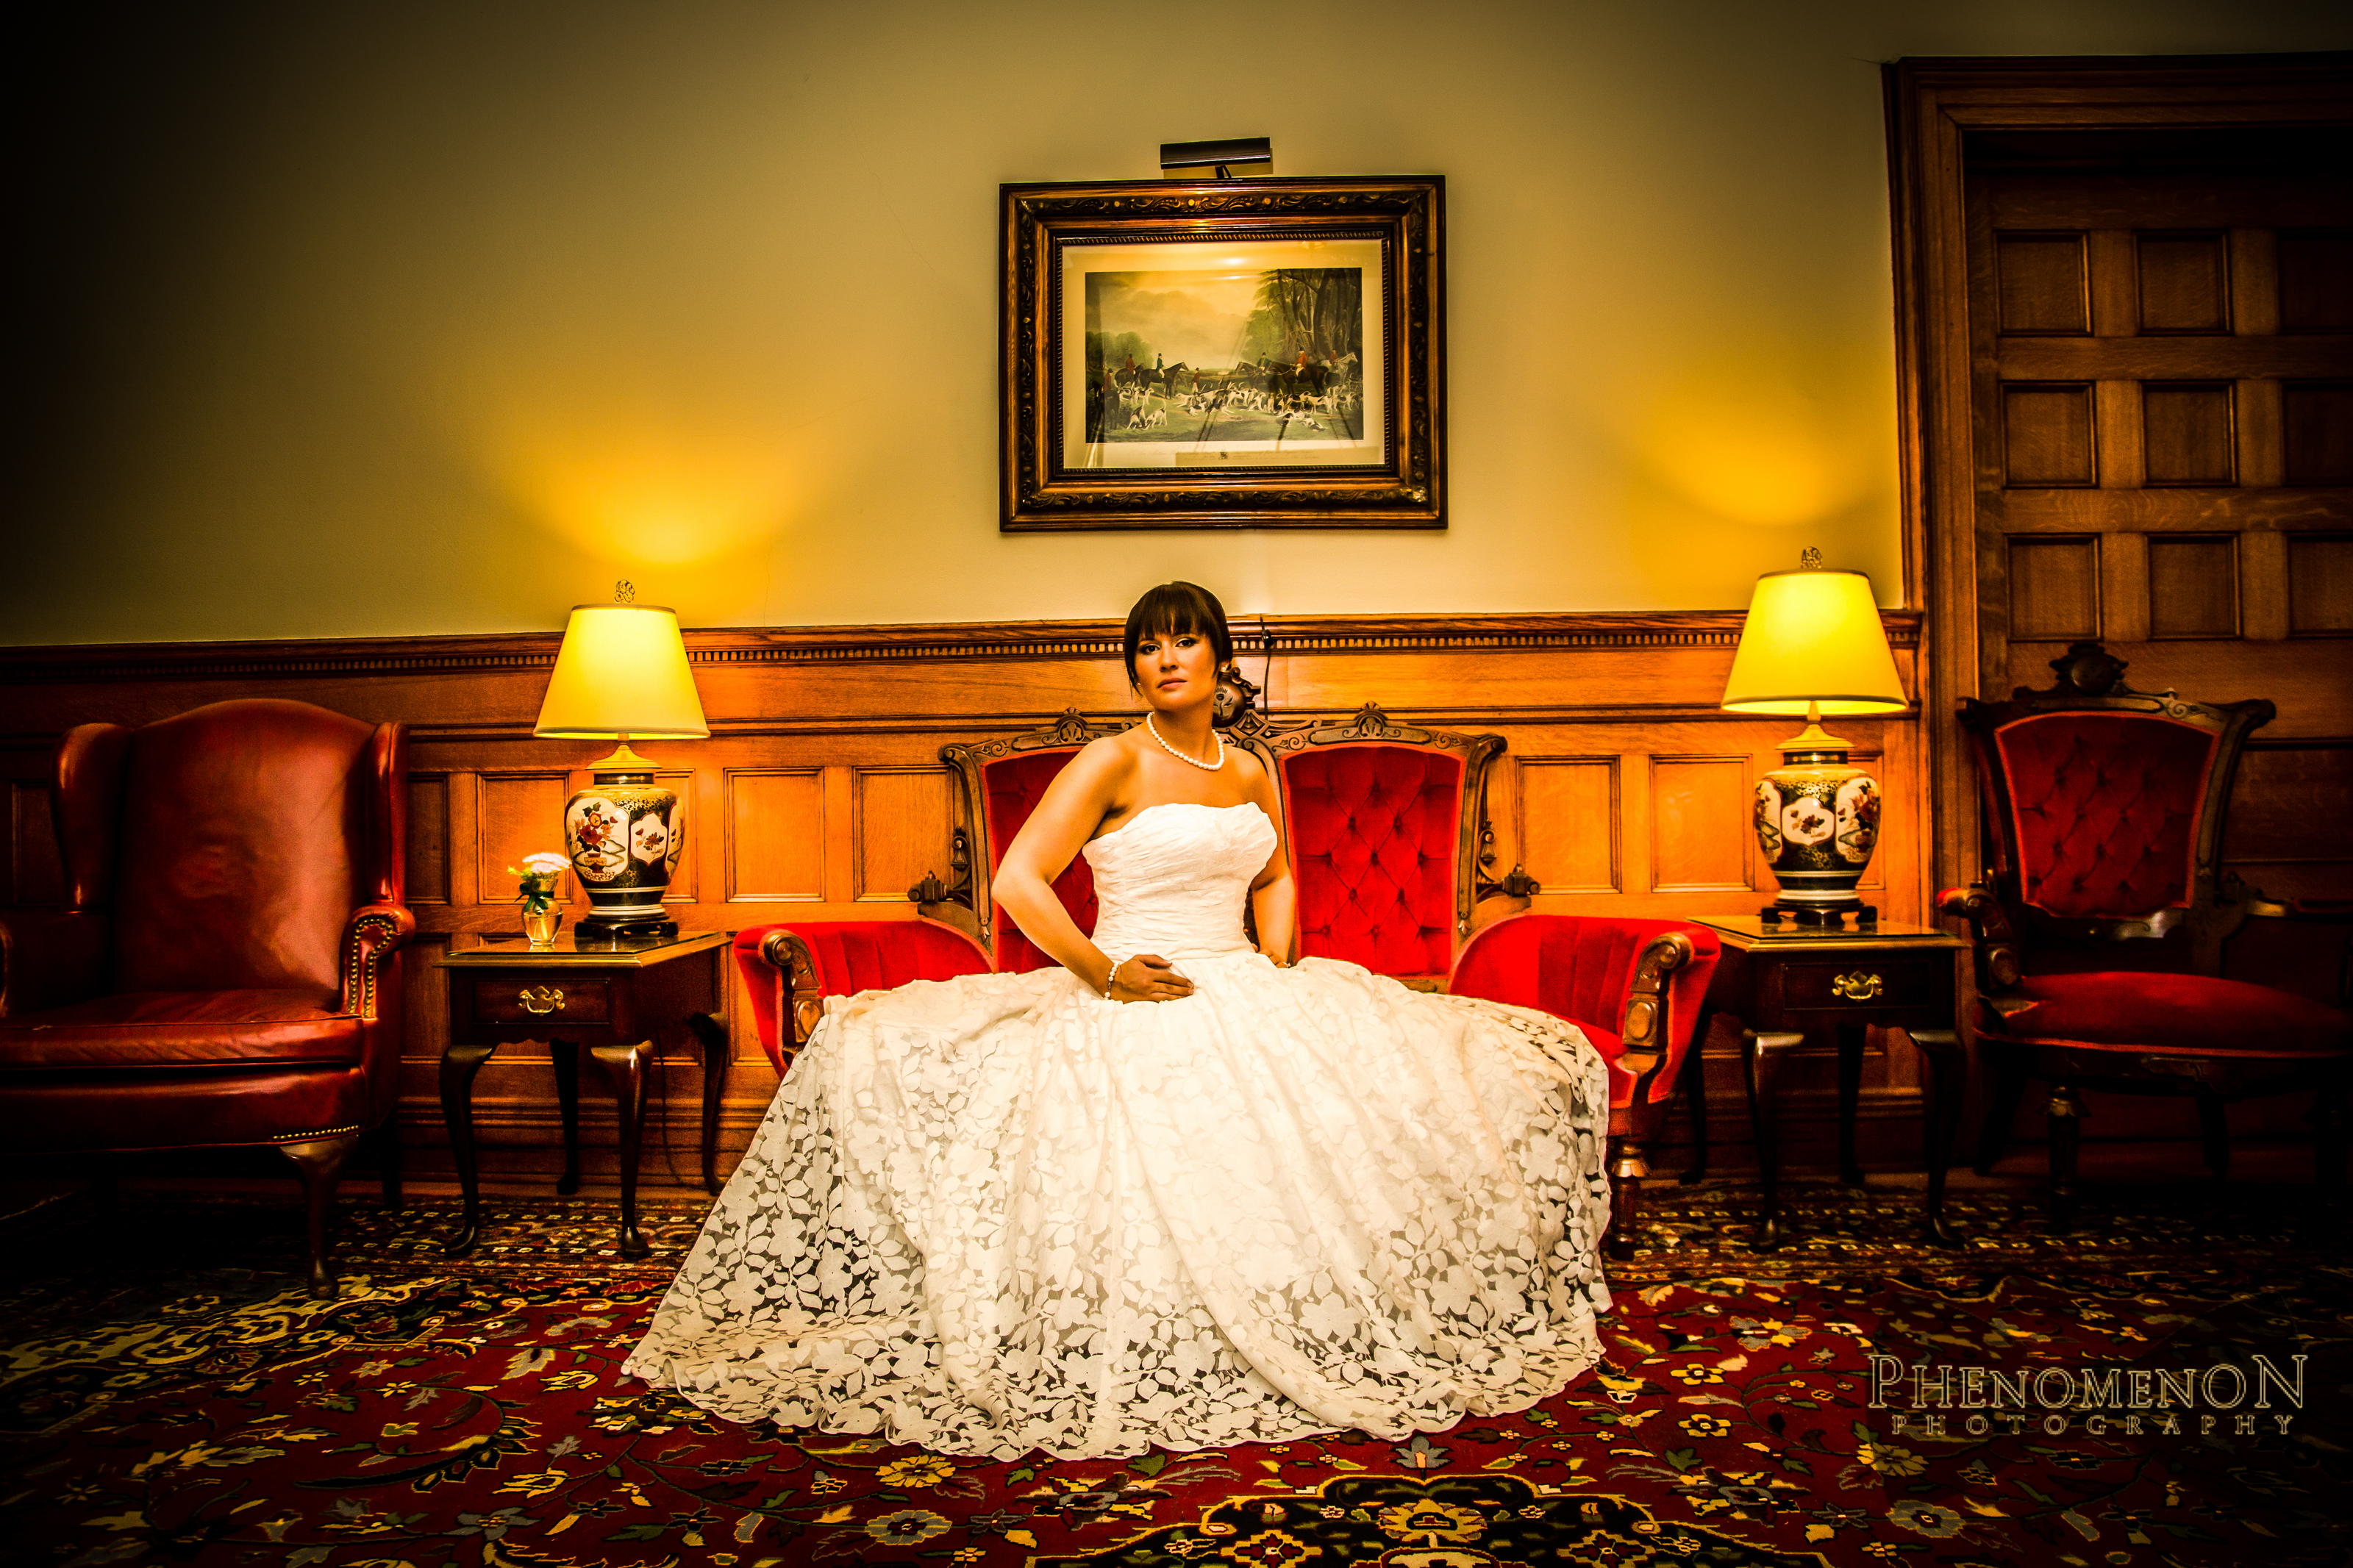 belhurst castle phenomenon buffalo wedding services